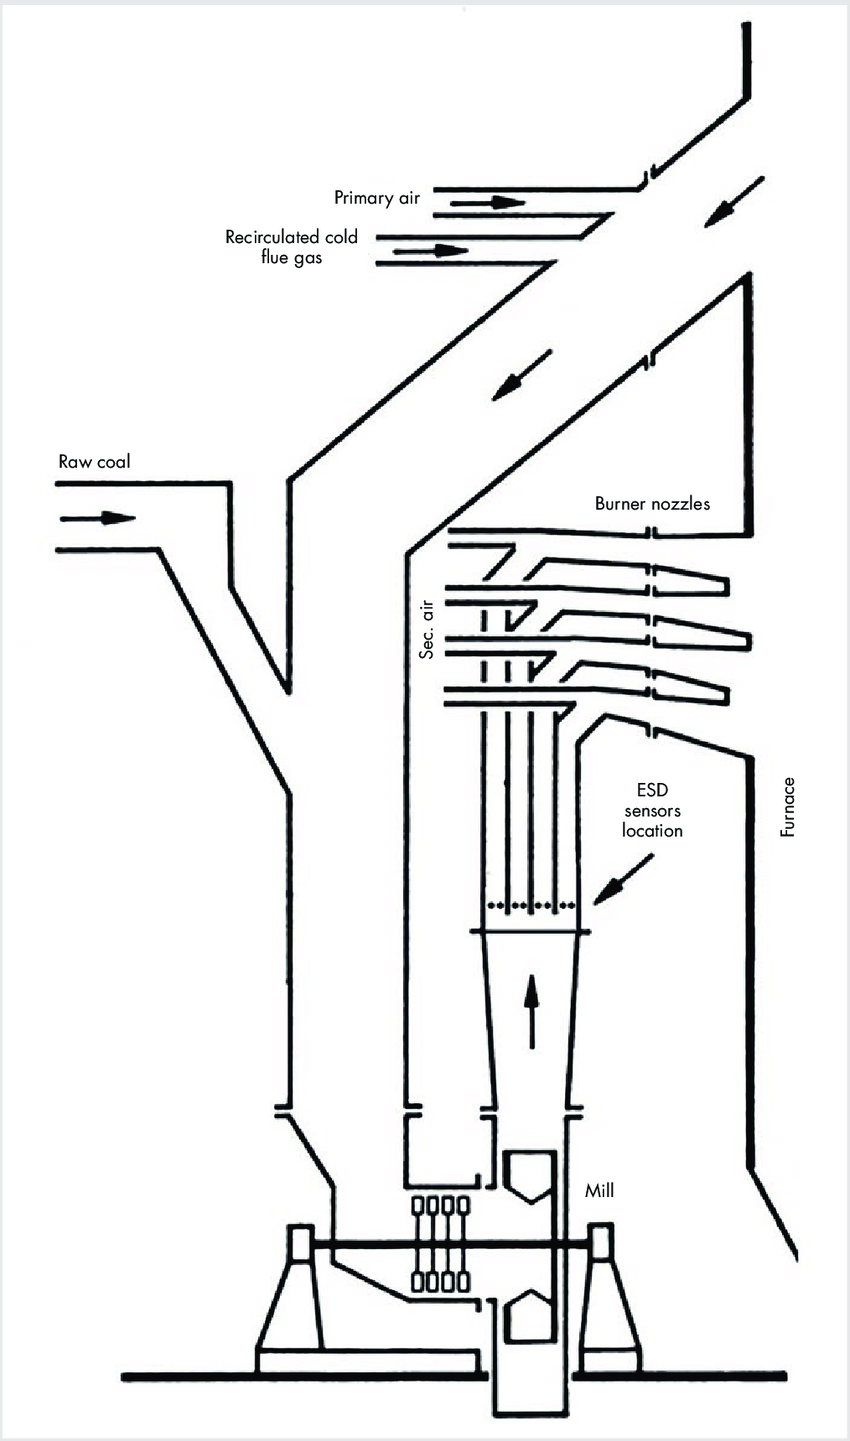 hight resolution of schematic arrangement of fan impact mill and burner nozzles with locations of the esd sensors